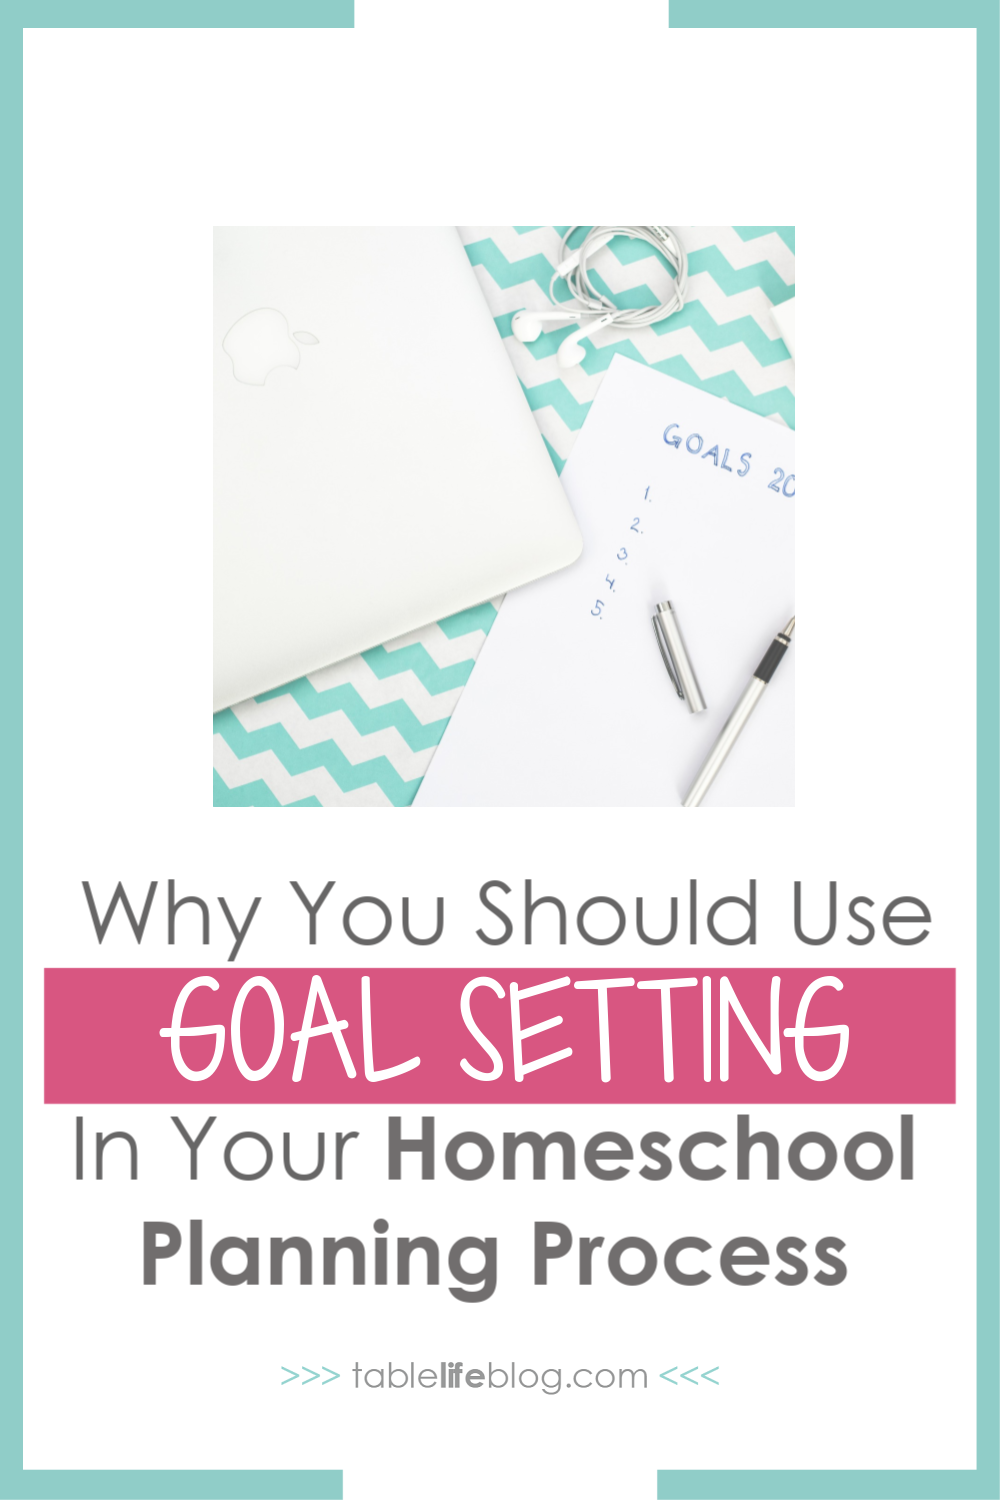 Does goal setting have a place in your homeschool planning process? Here's how to keep doubt at bay while focusing on the subjects that matter most to you.